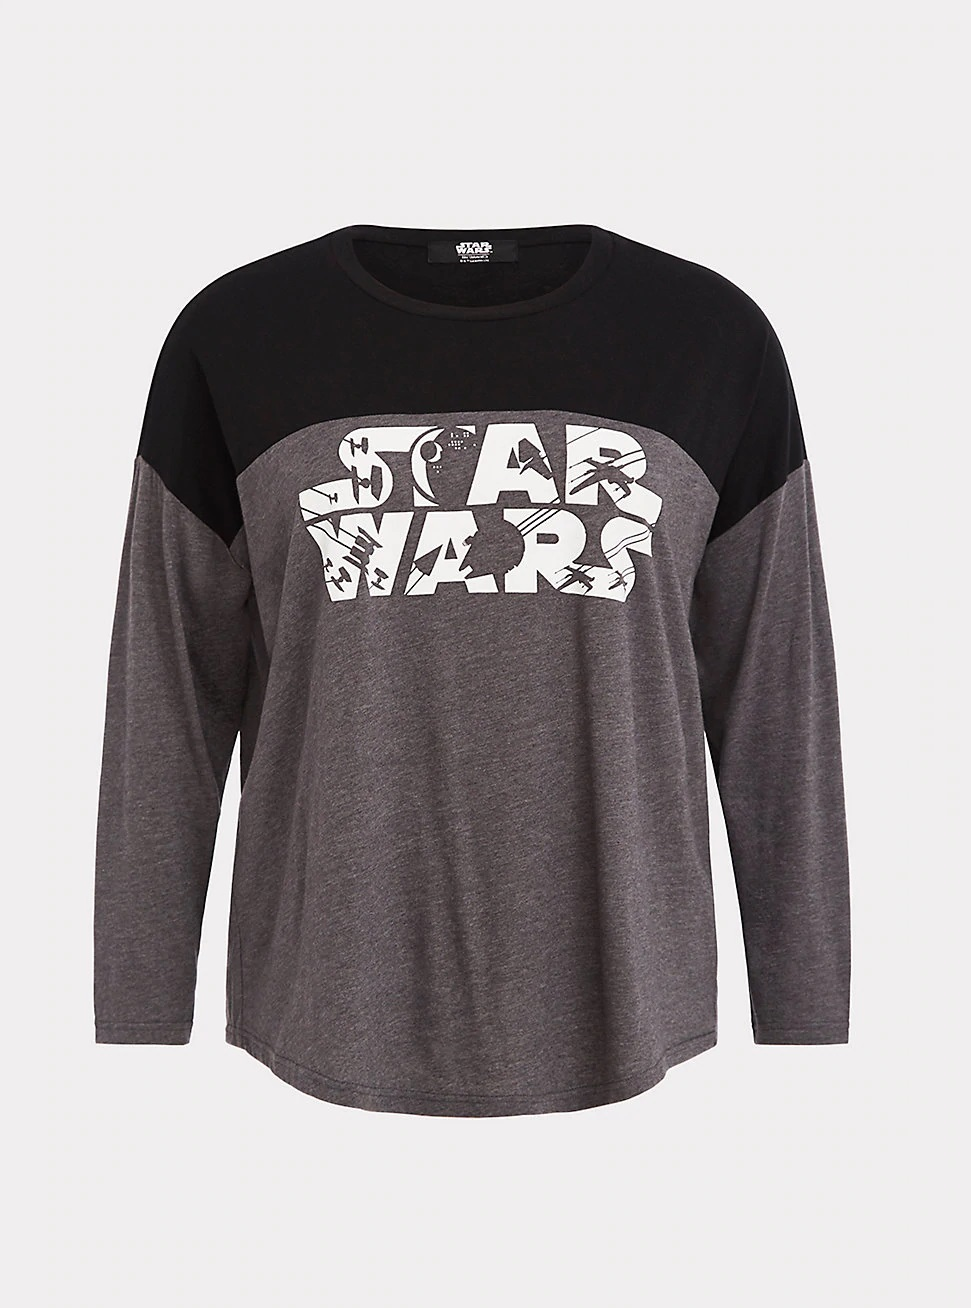 Women's Her Universe x Star Wars Logo Long Sleeve Grey Jersey Plus Size Top at Torrid